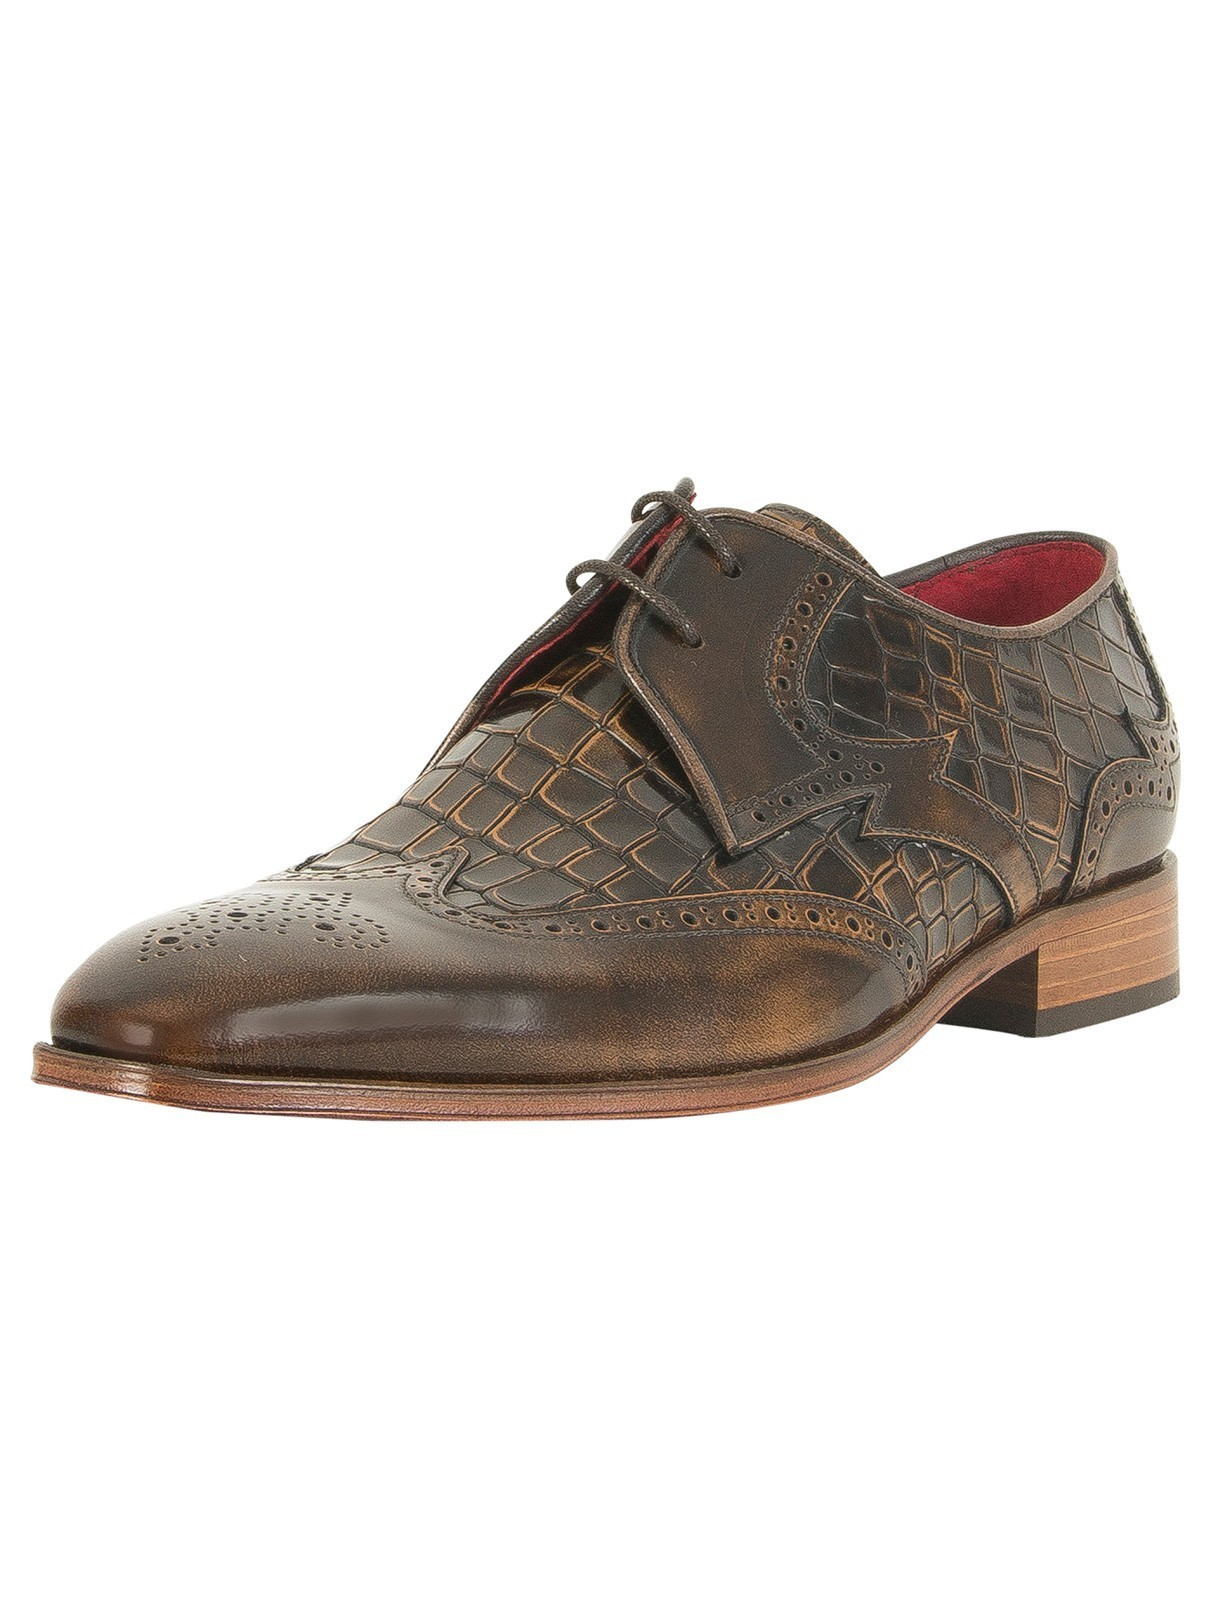 Stand-out.net Jeffery West College Camel/Antick Camel Capone Polished Leather Shoes